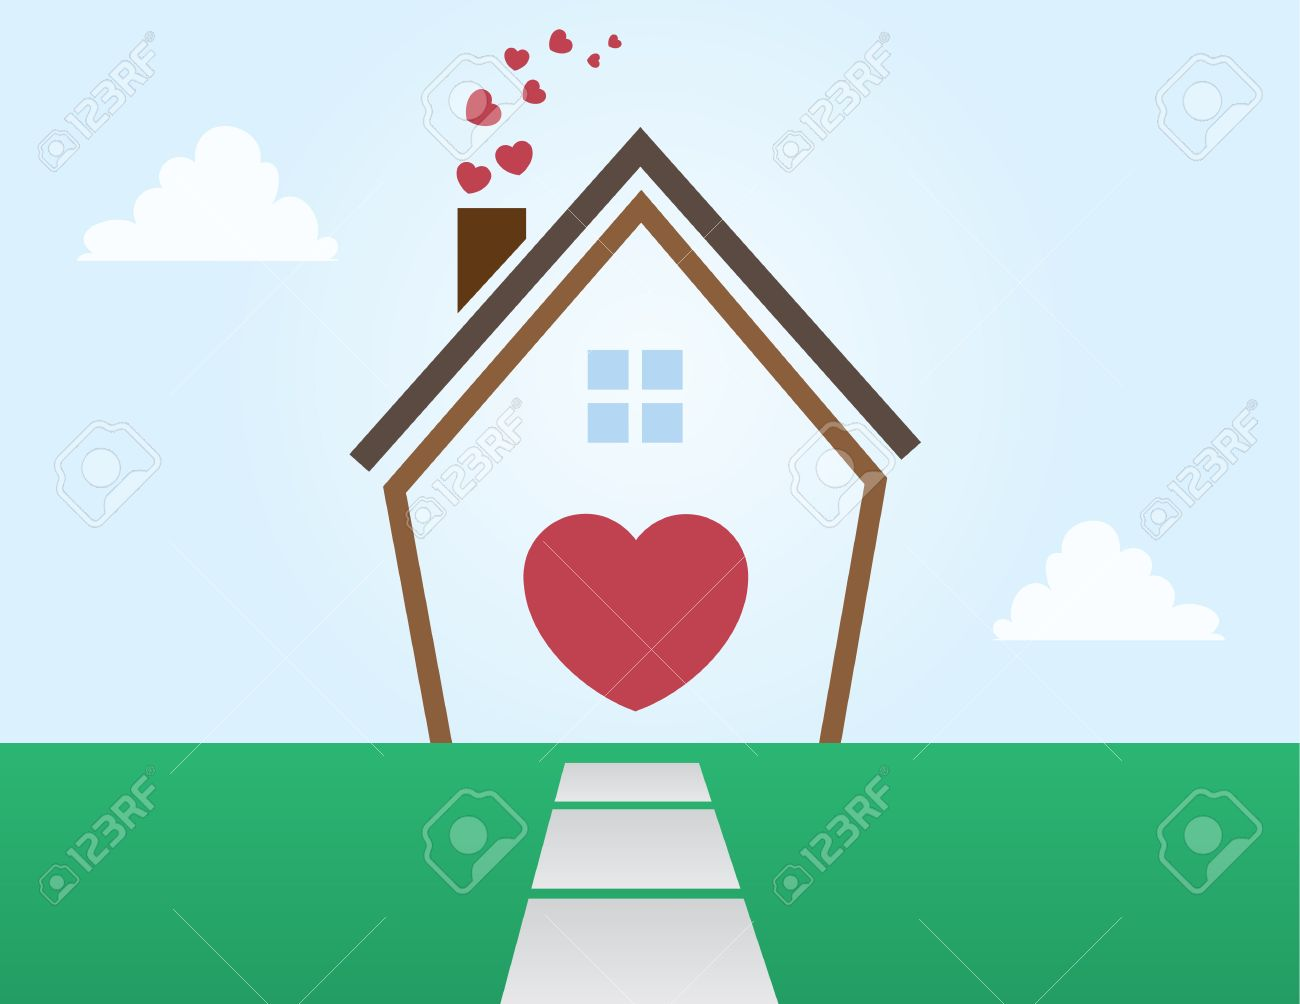 House outline picture - House Outline Abstract With Hearts Stock Vector 14294003